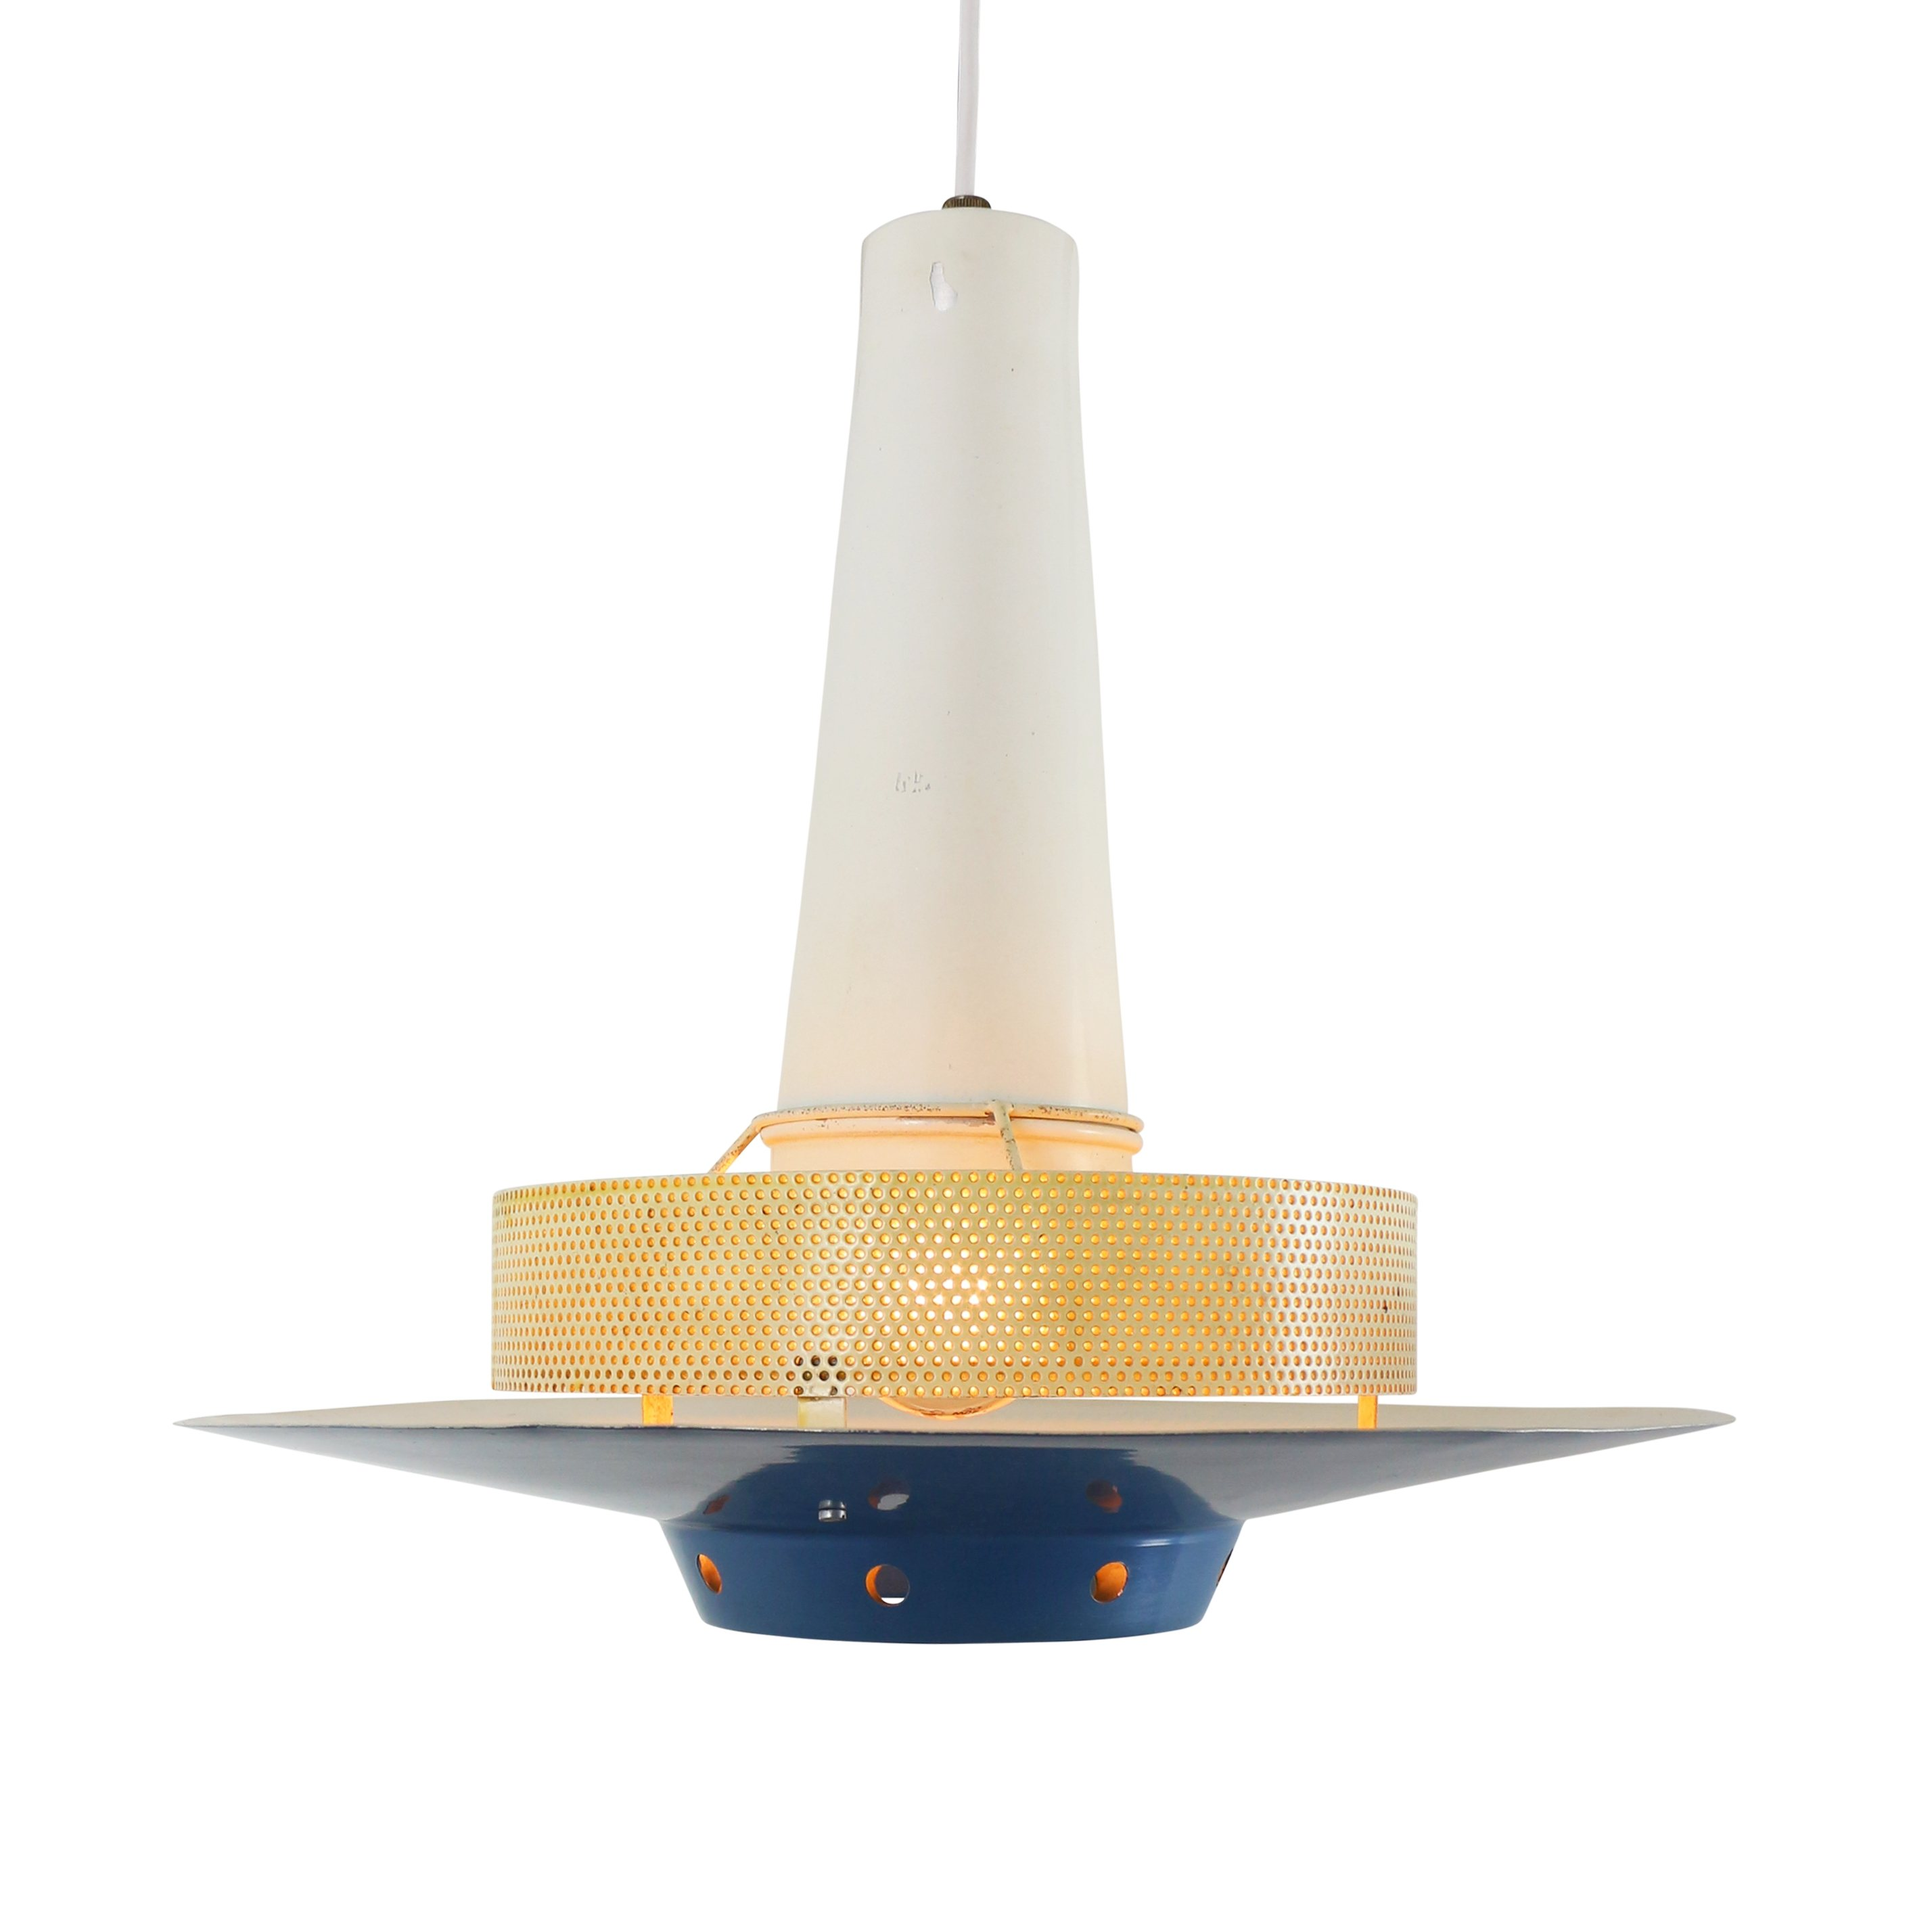 Blue Pendant Light By Louis Kalff For Philips 1950s 1370